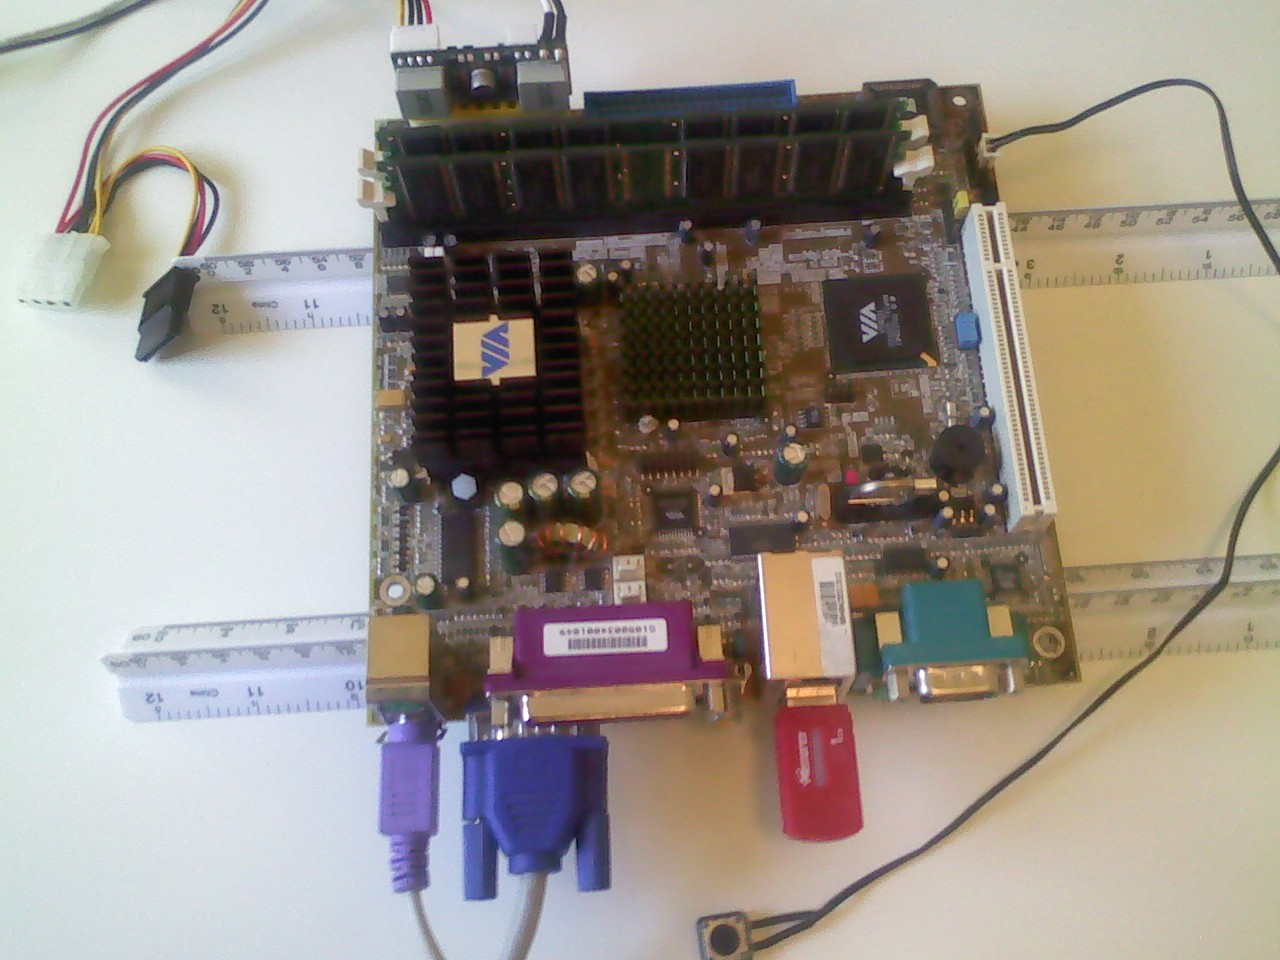 Ian's TechBlog: Creating a bootable USB drive when the BIOS supports